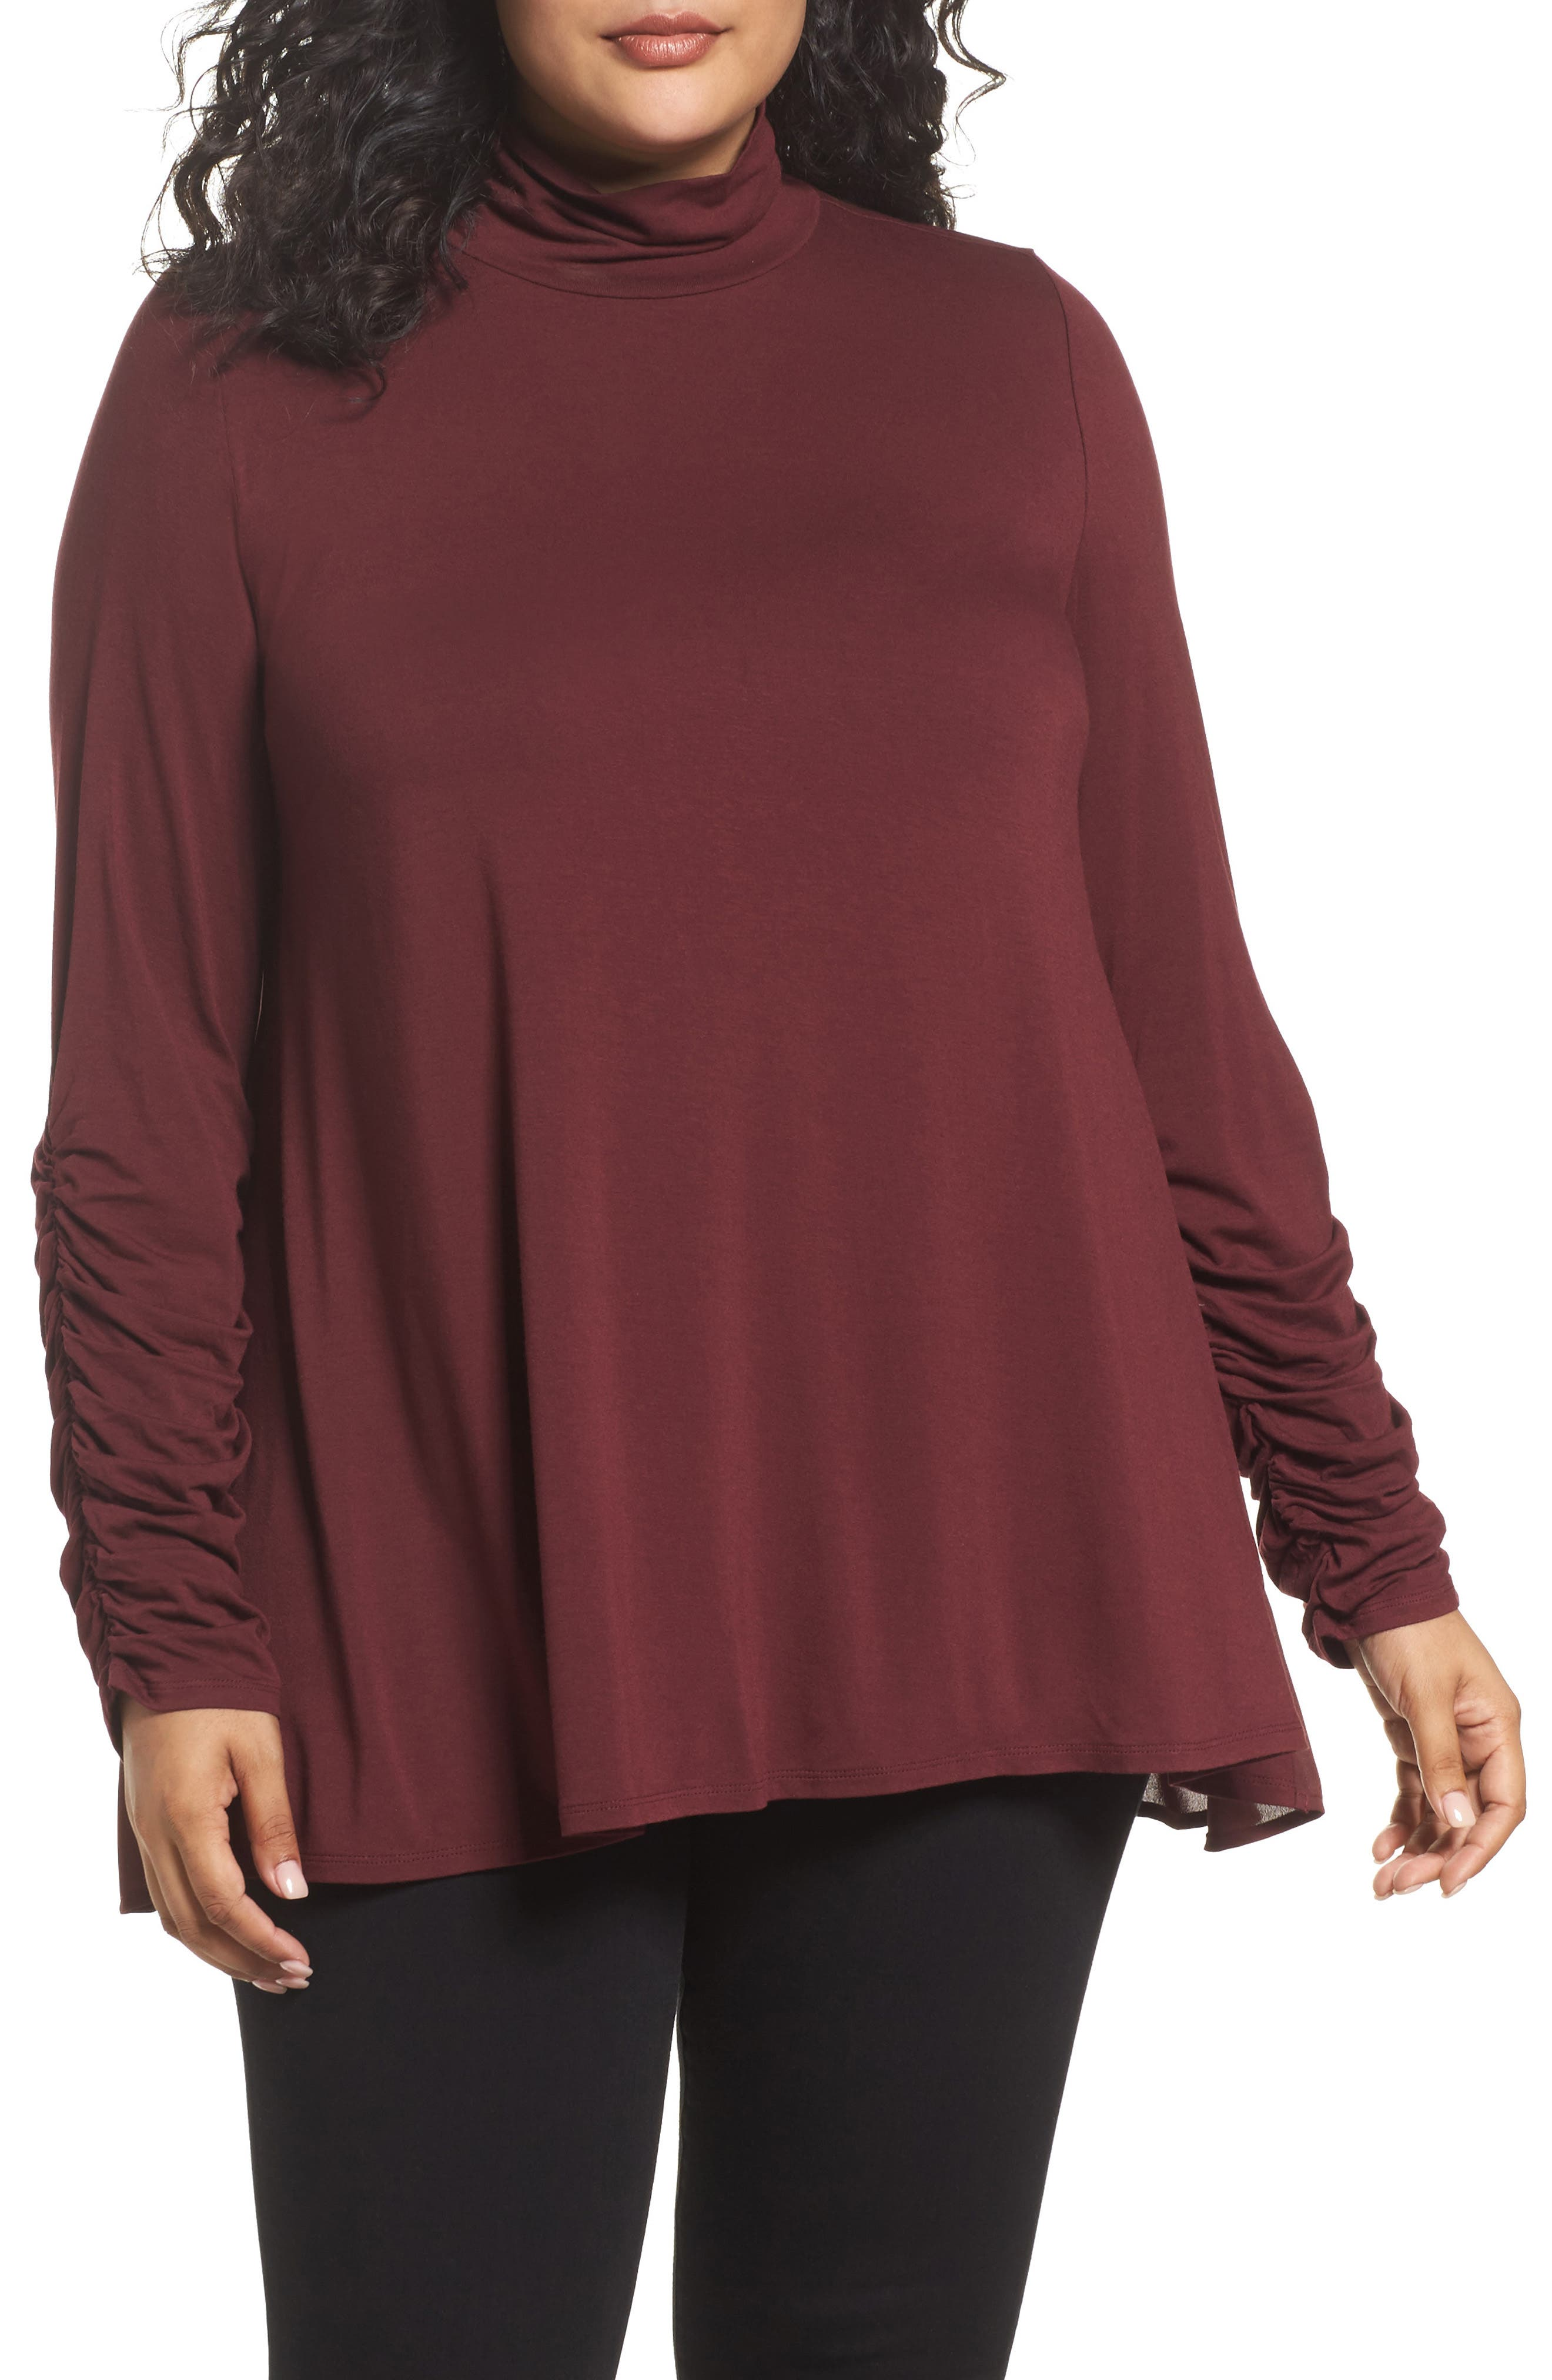 Main Image - Vince Camuto Ruched Sleeve Turtleneck Top (Plus Size)